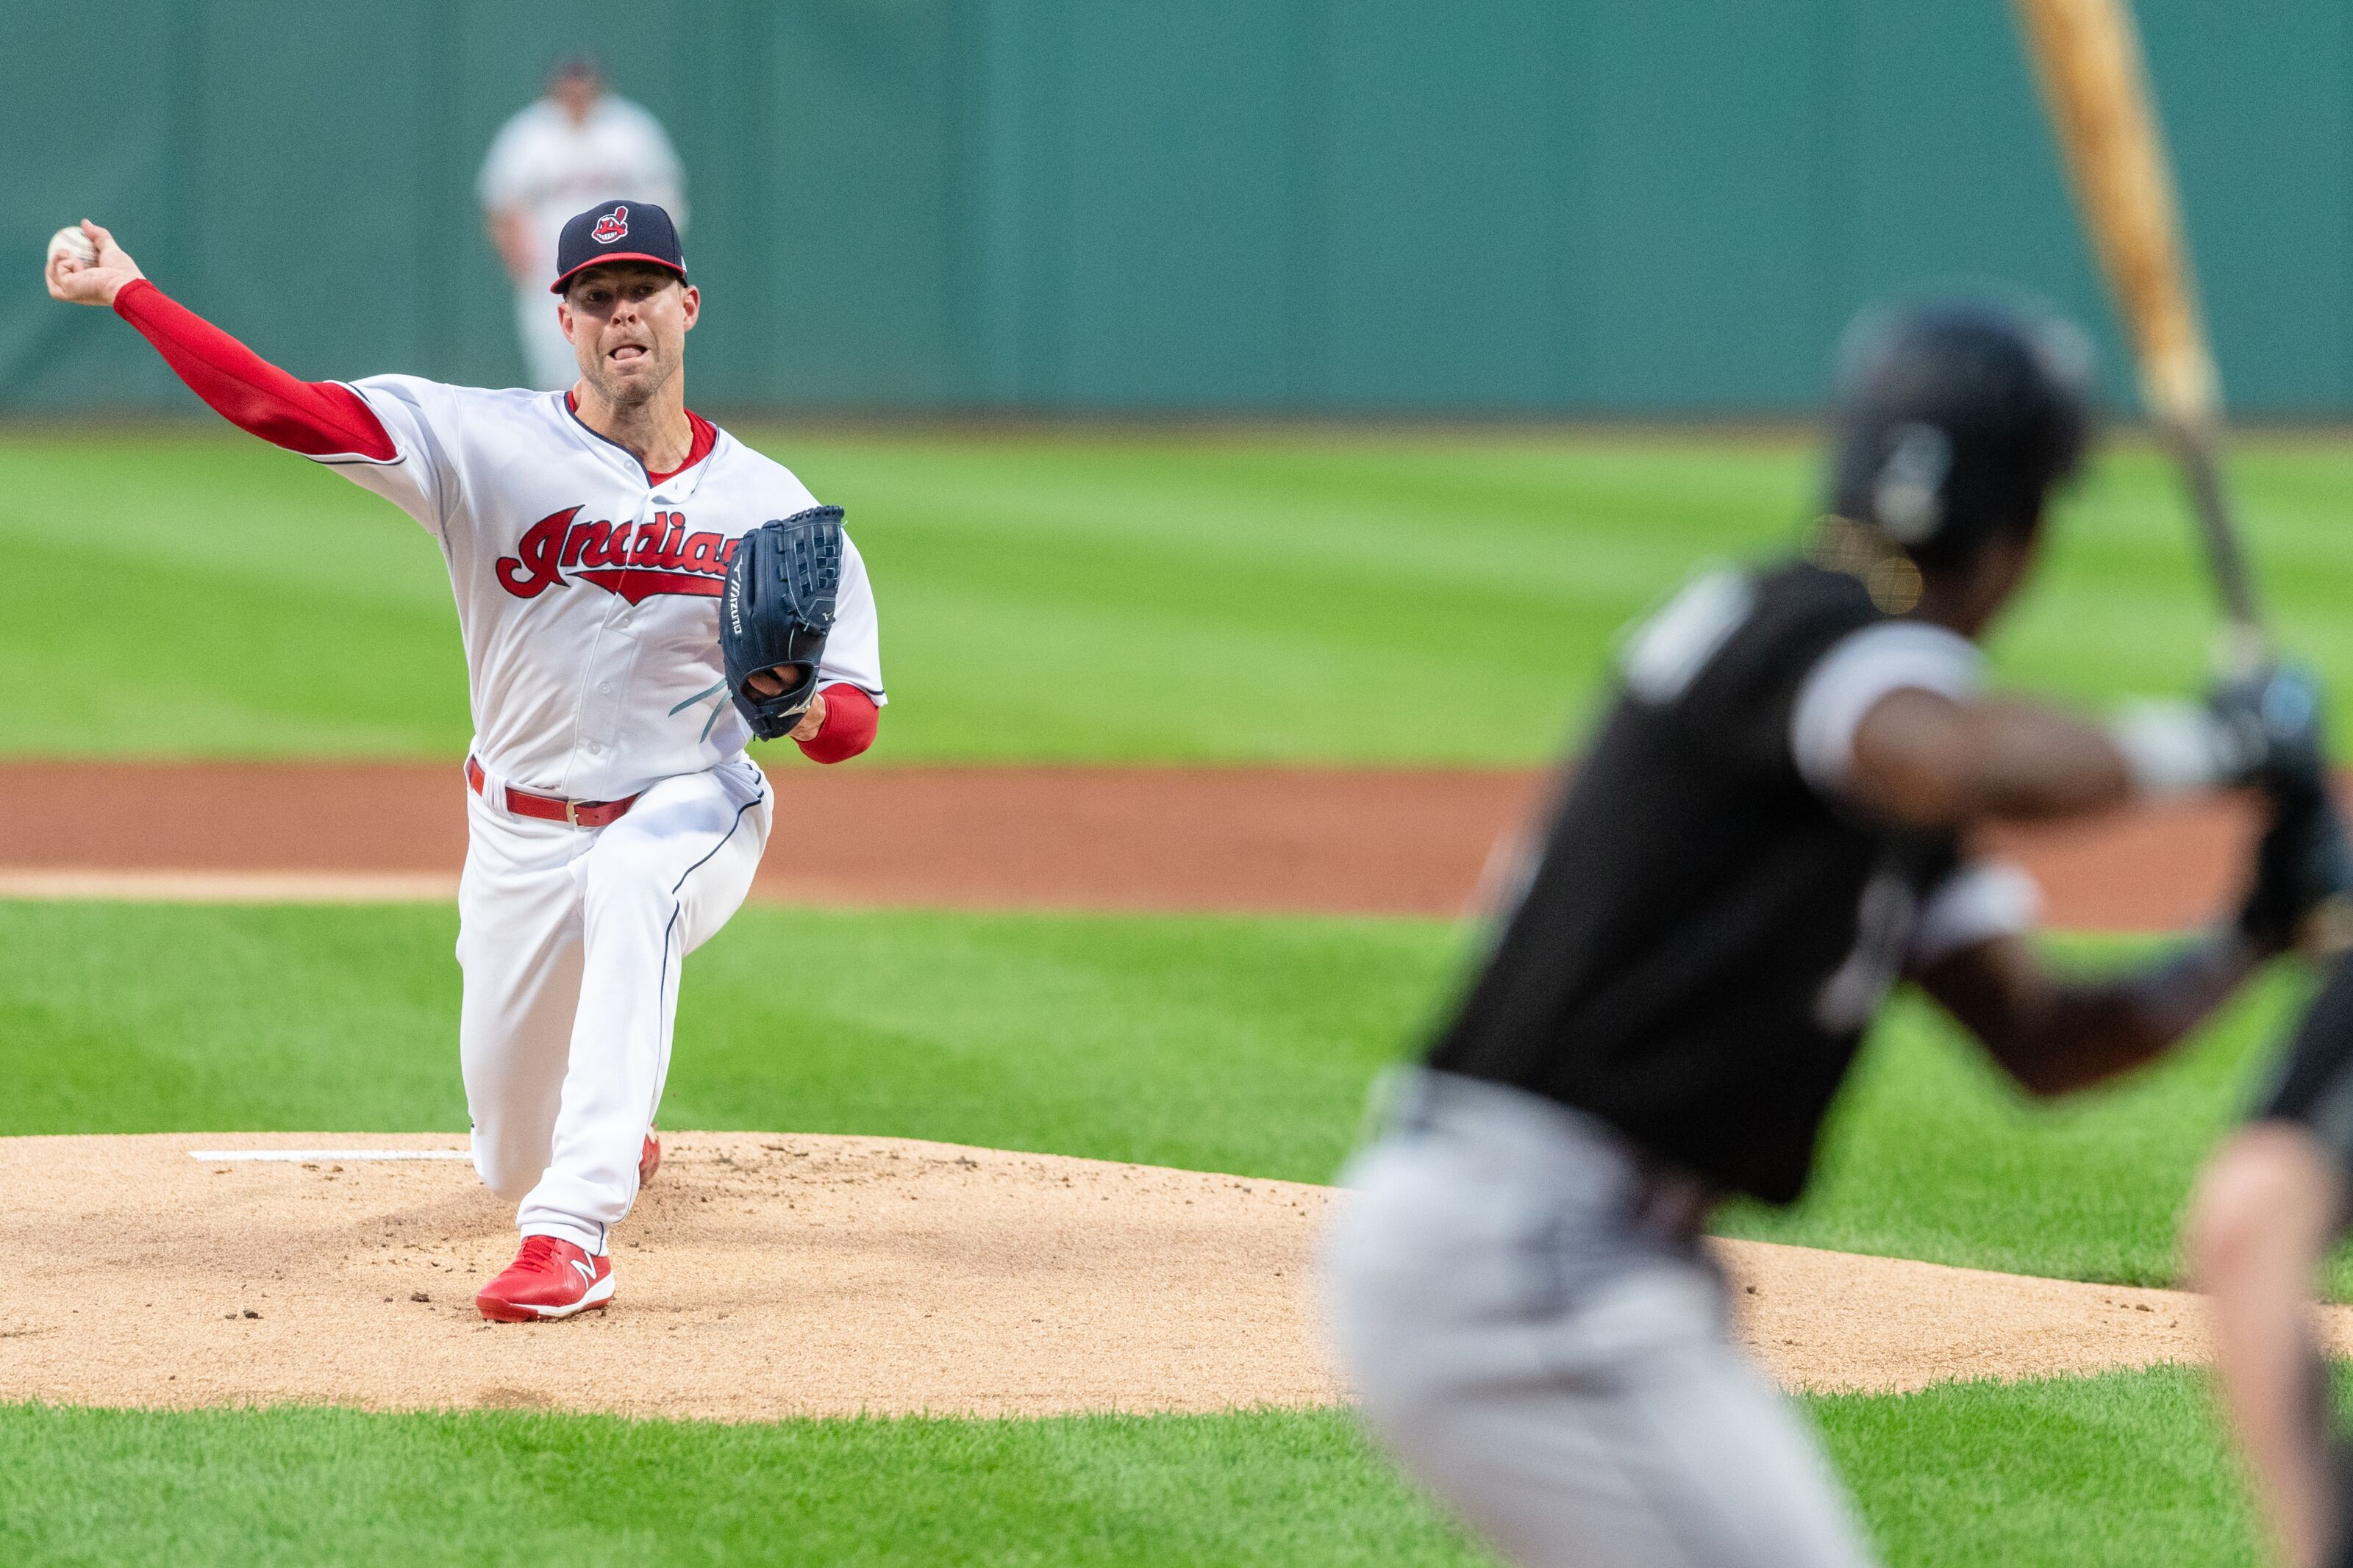 Should White Sox be more aggressive in free agency after Kluber deal